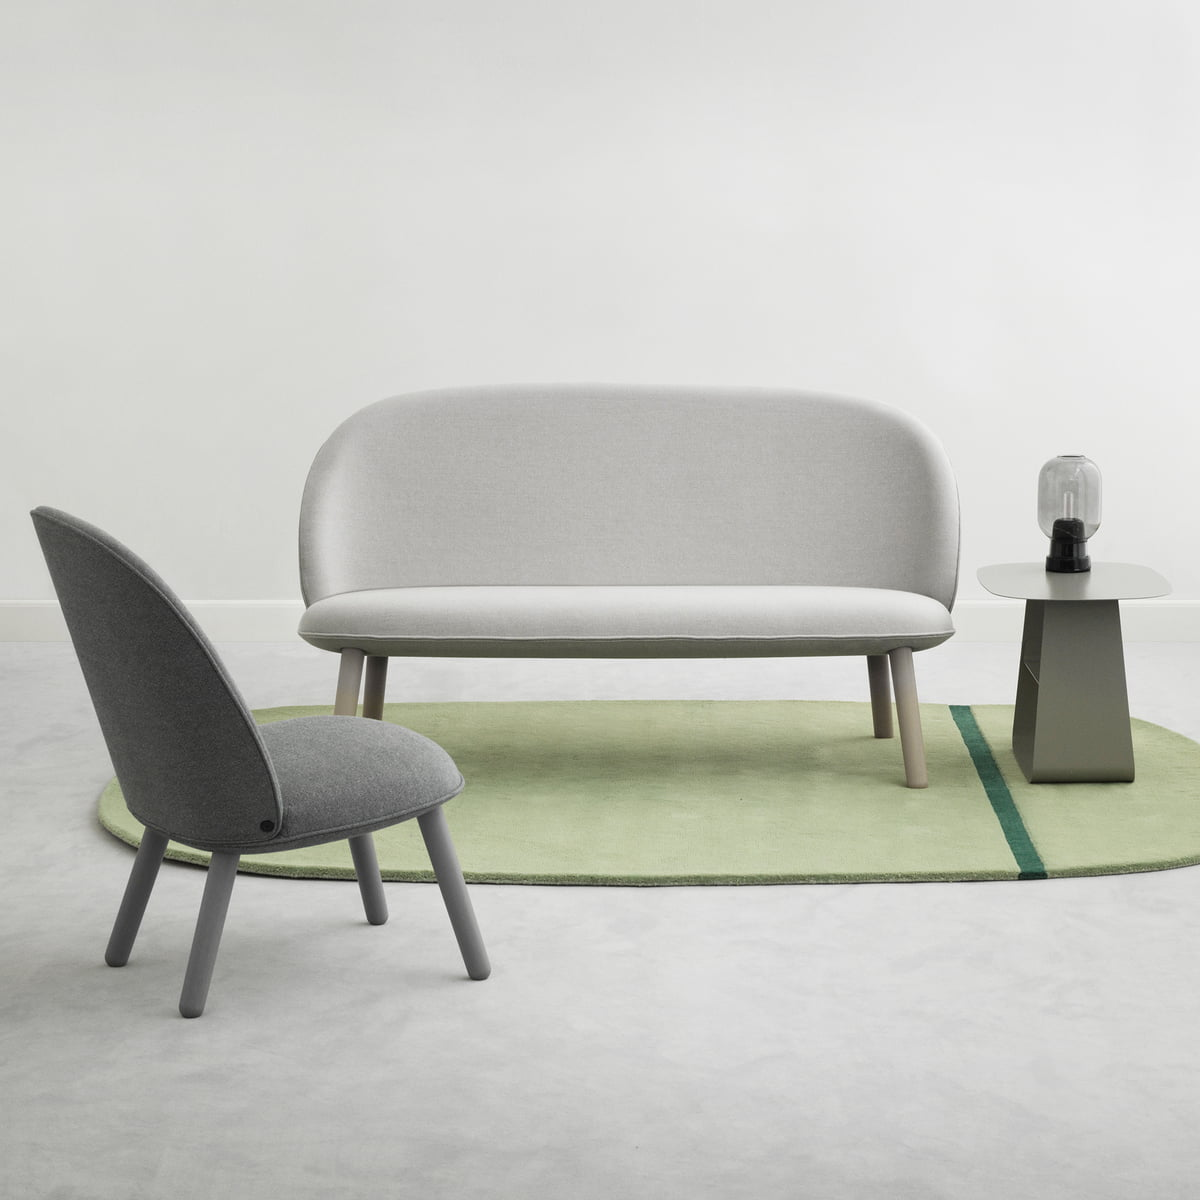 ace lounge chair nist from normann copenhagen. Black Bedroom Furniture Sets. Home Design Ideas